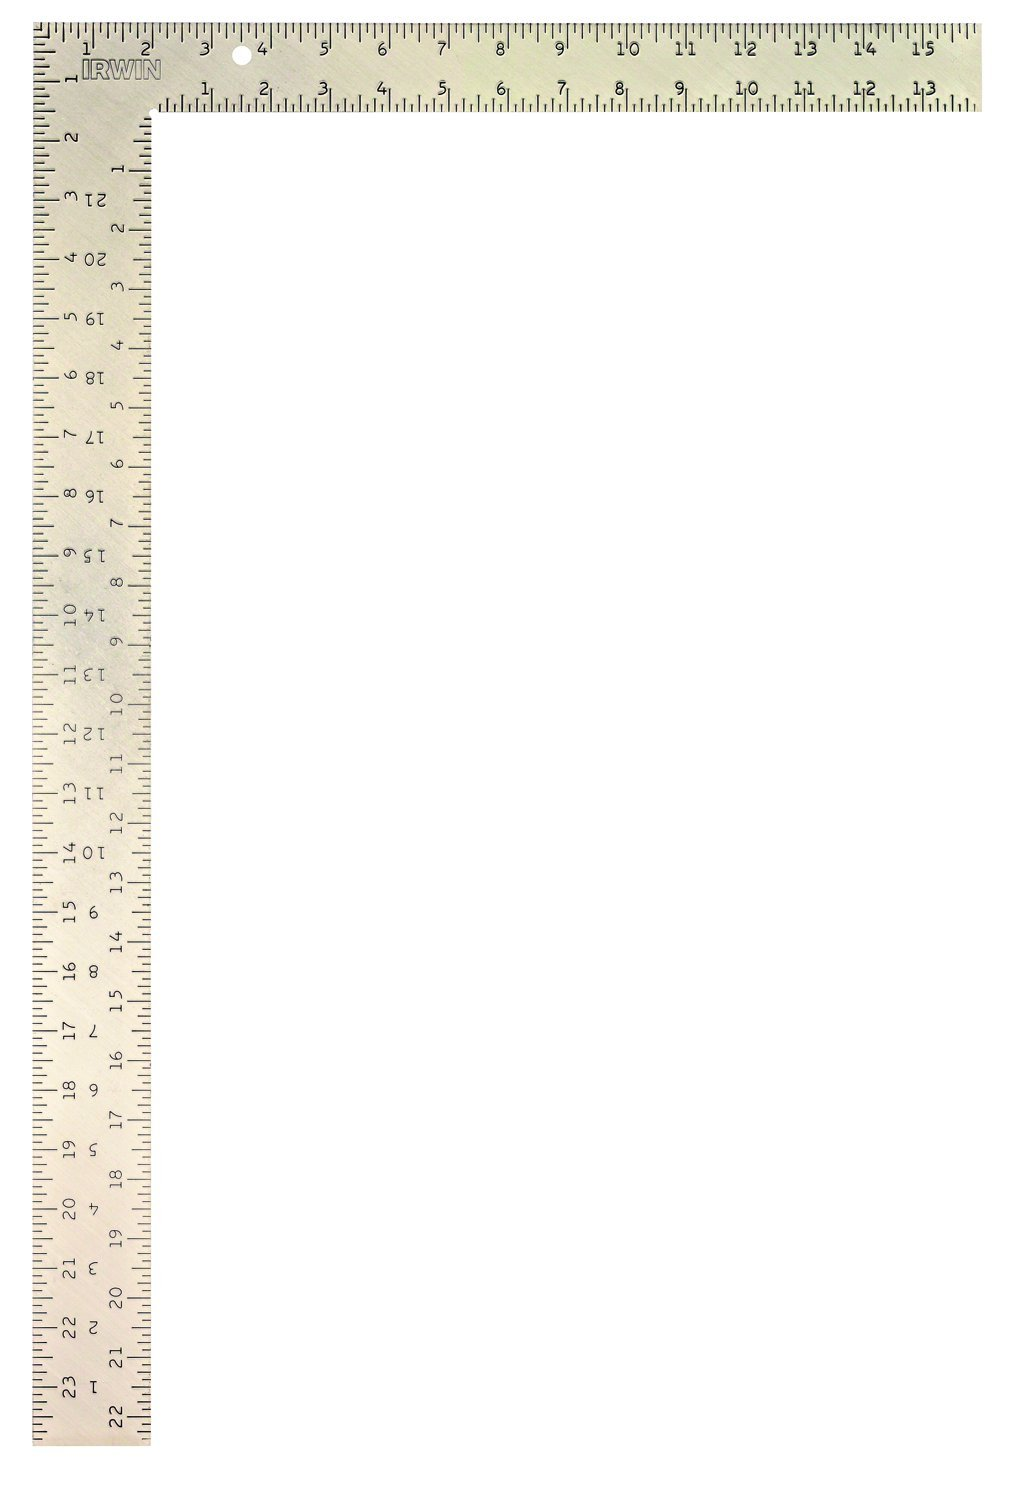 IRWIN Tools Carpenter Square, Steel, 16-Inch by 24-Inch (1794461)